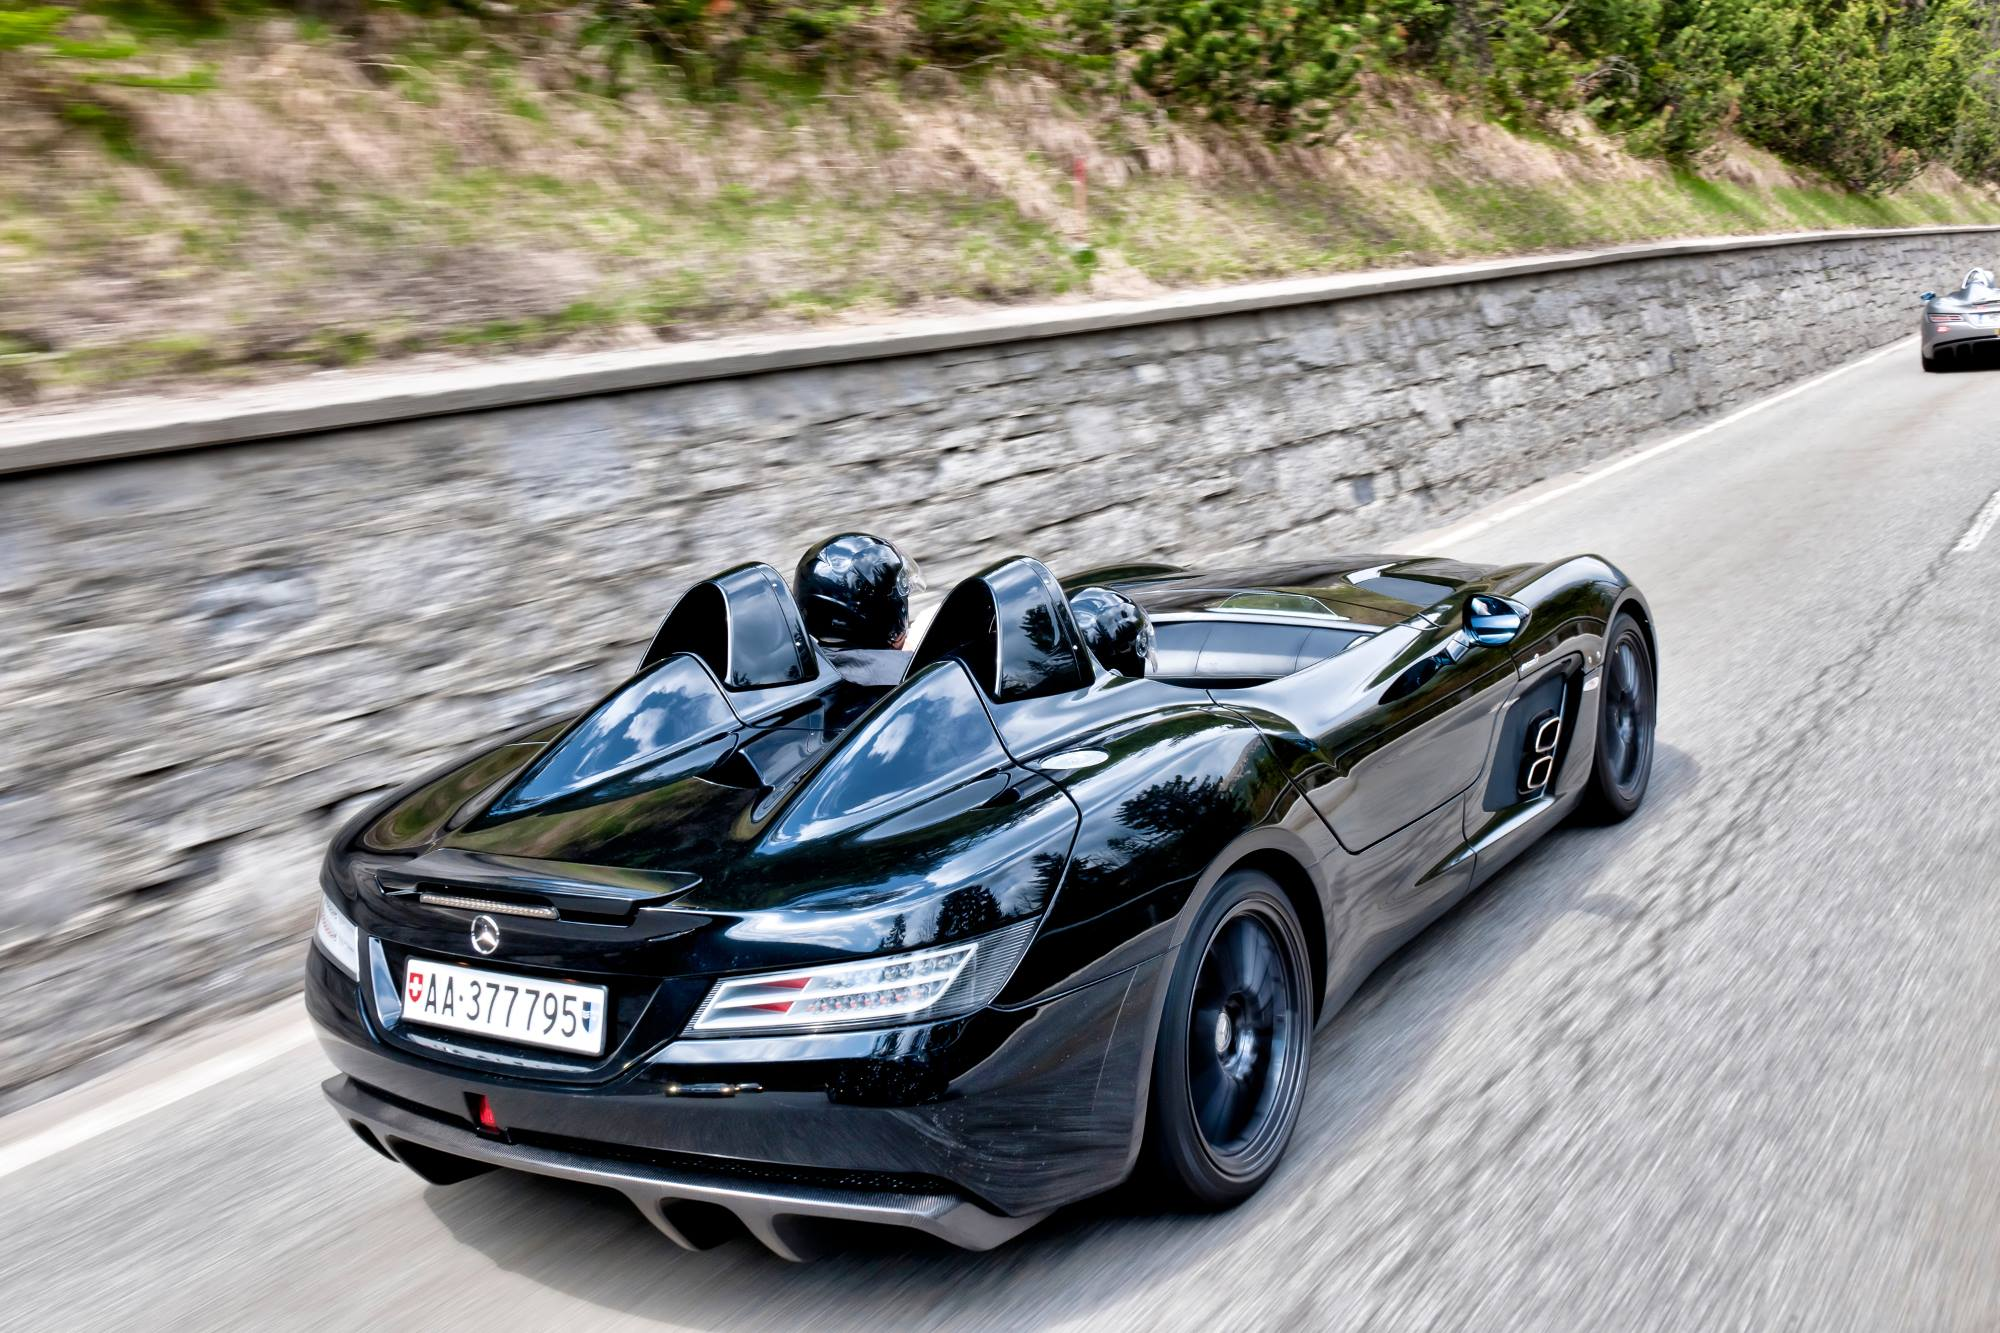 An Slr Mclaren Convoy Is A Sight To Remember In The Alps